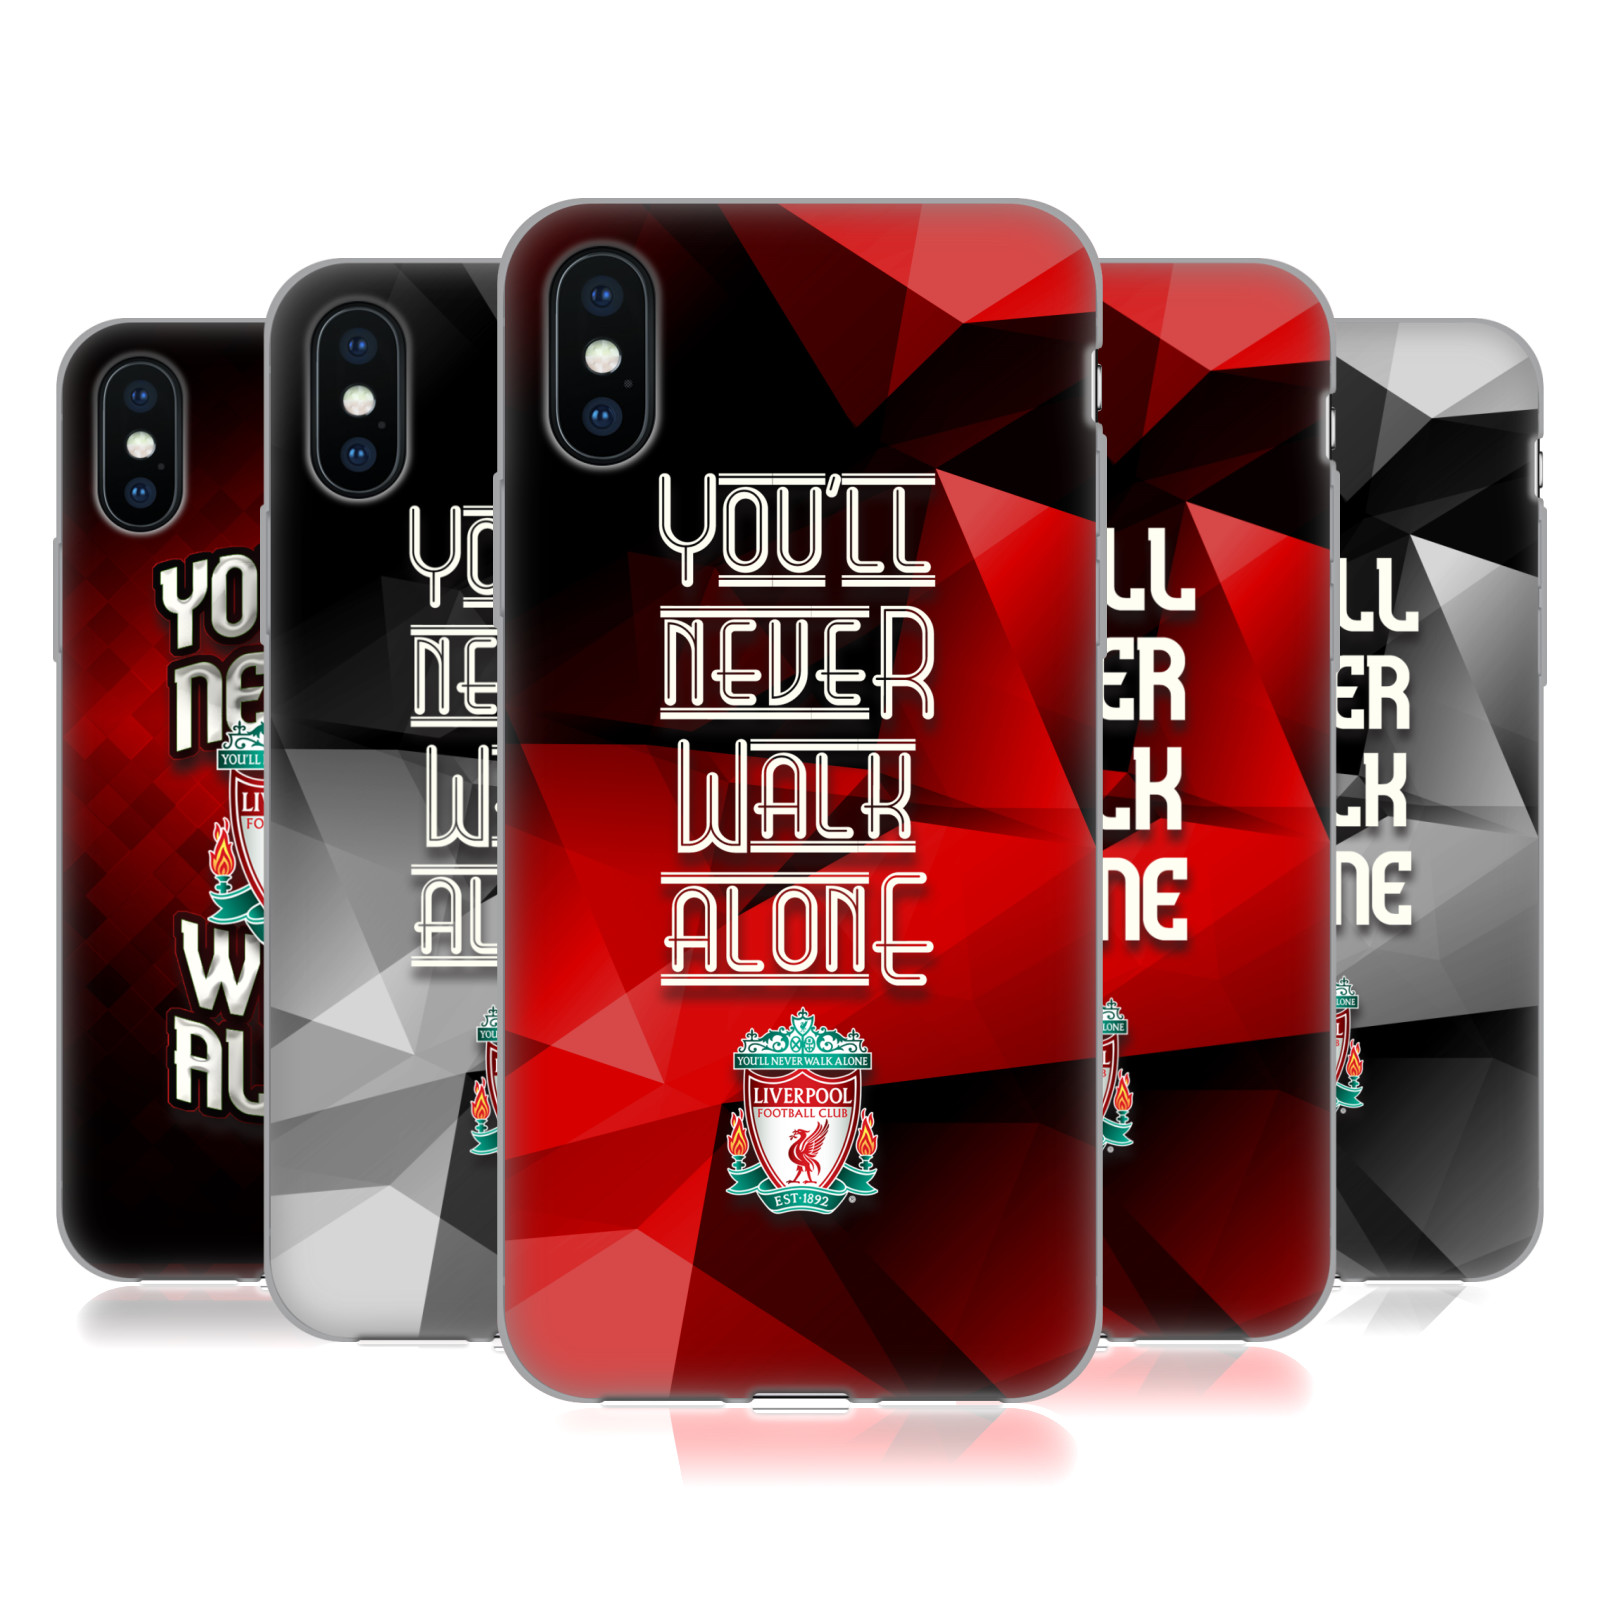 Liverpool Football Club <!--translate-lineup-->Crest You'Ll Never Walk Alone<!--translate-lineup-->